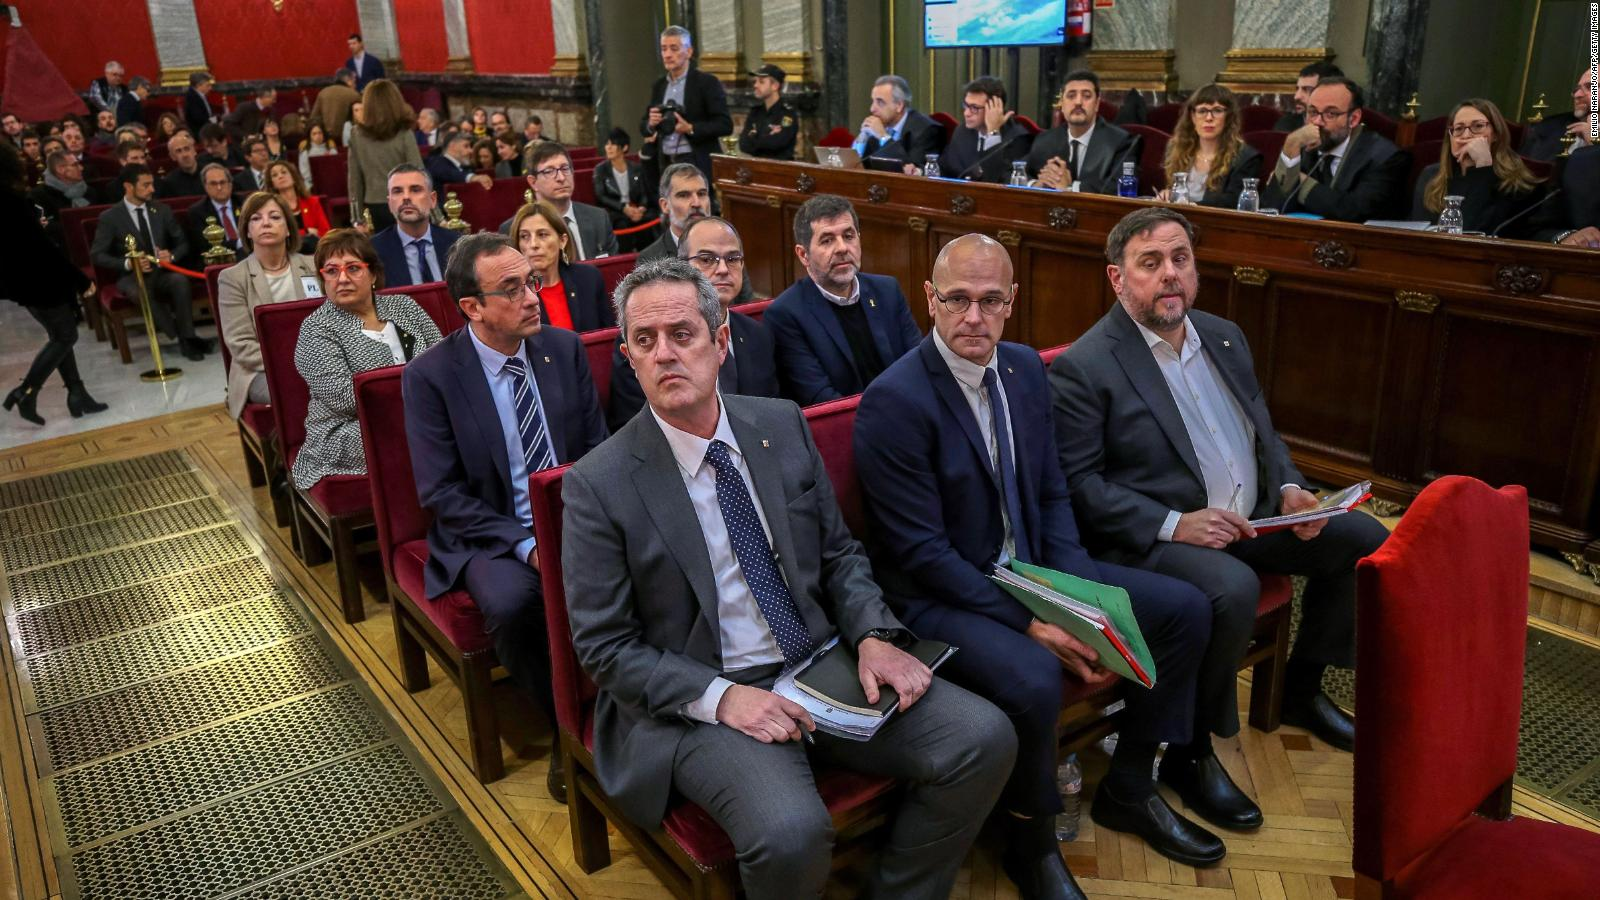 Twelve former Catalan leaders go on trial at Spain's Supreme Court for their role in a failed 2017 bid to break away from Spain.